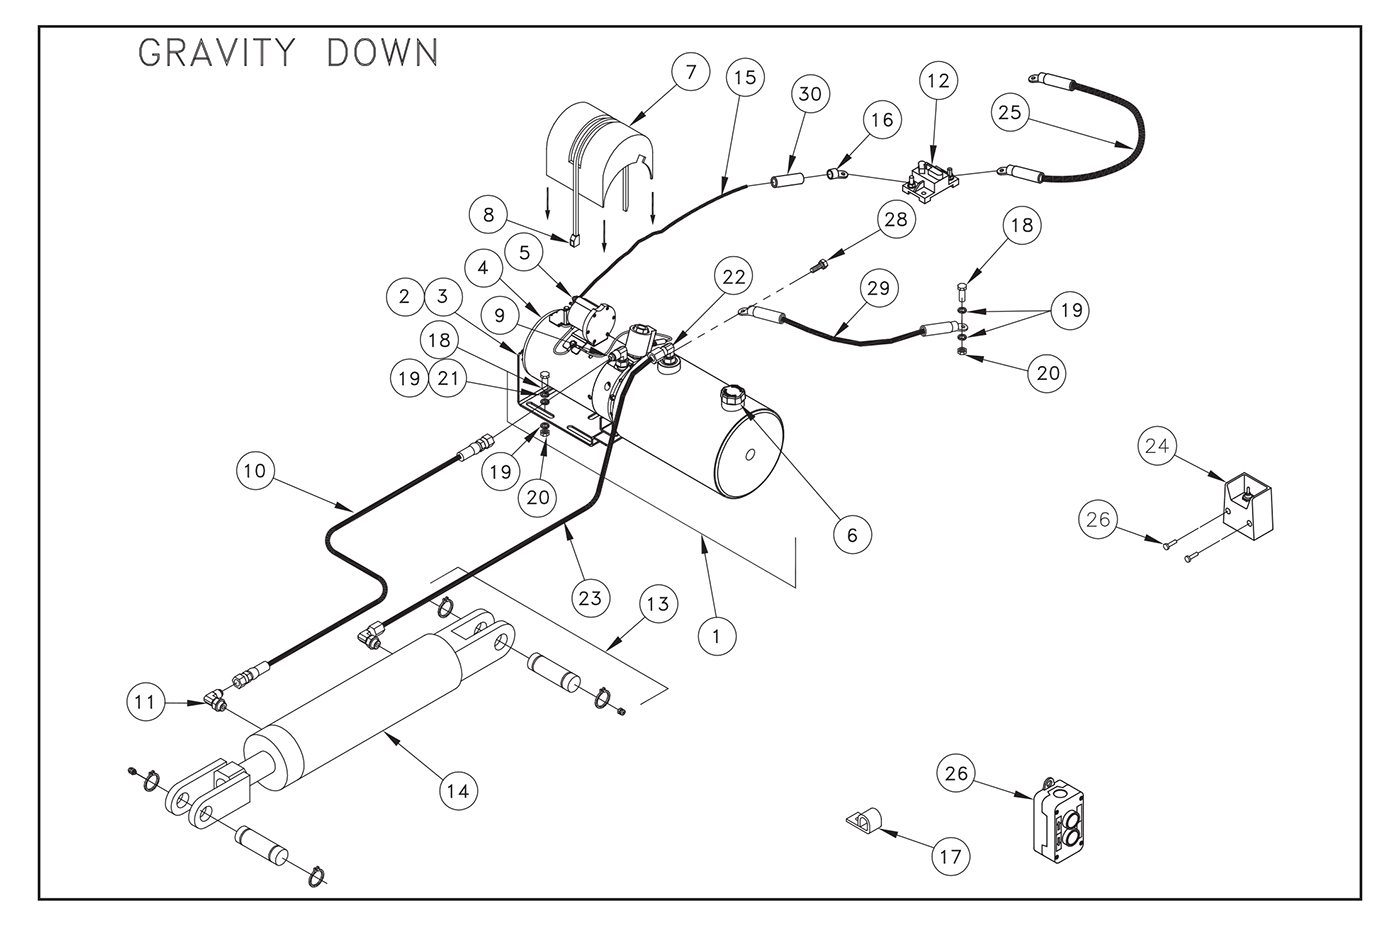 ST22 Electric Control Pump Assembly (Gravity Down) Diagram